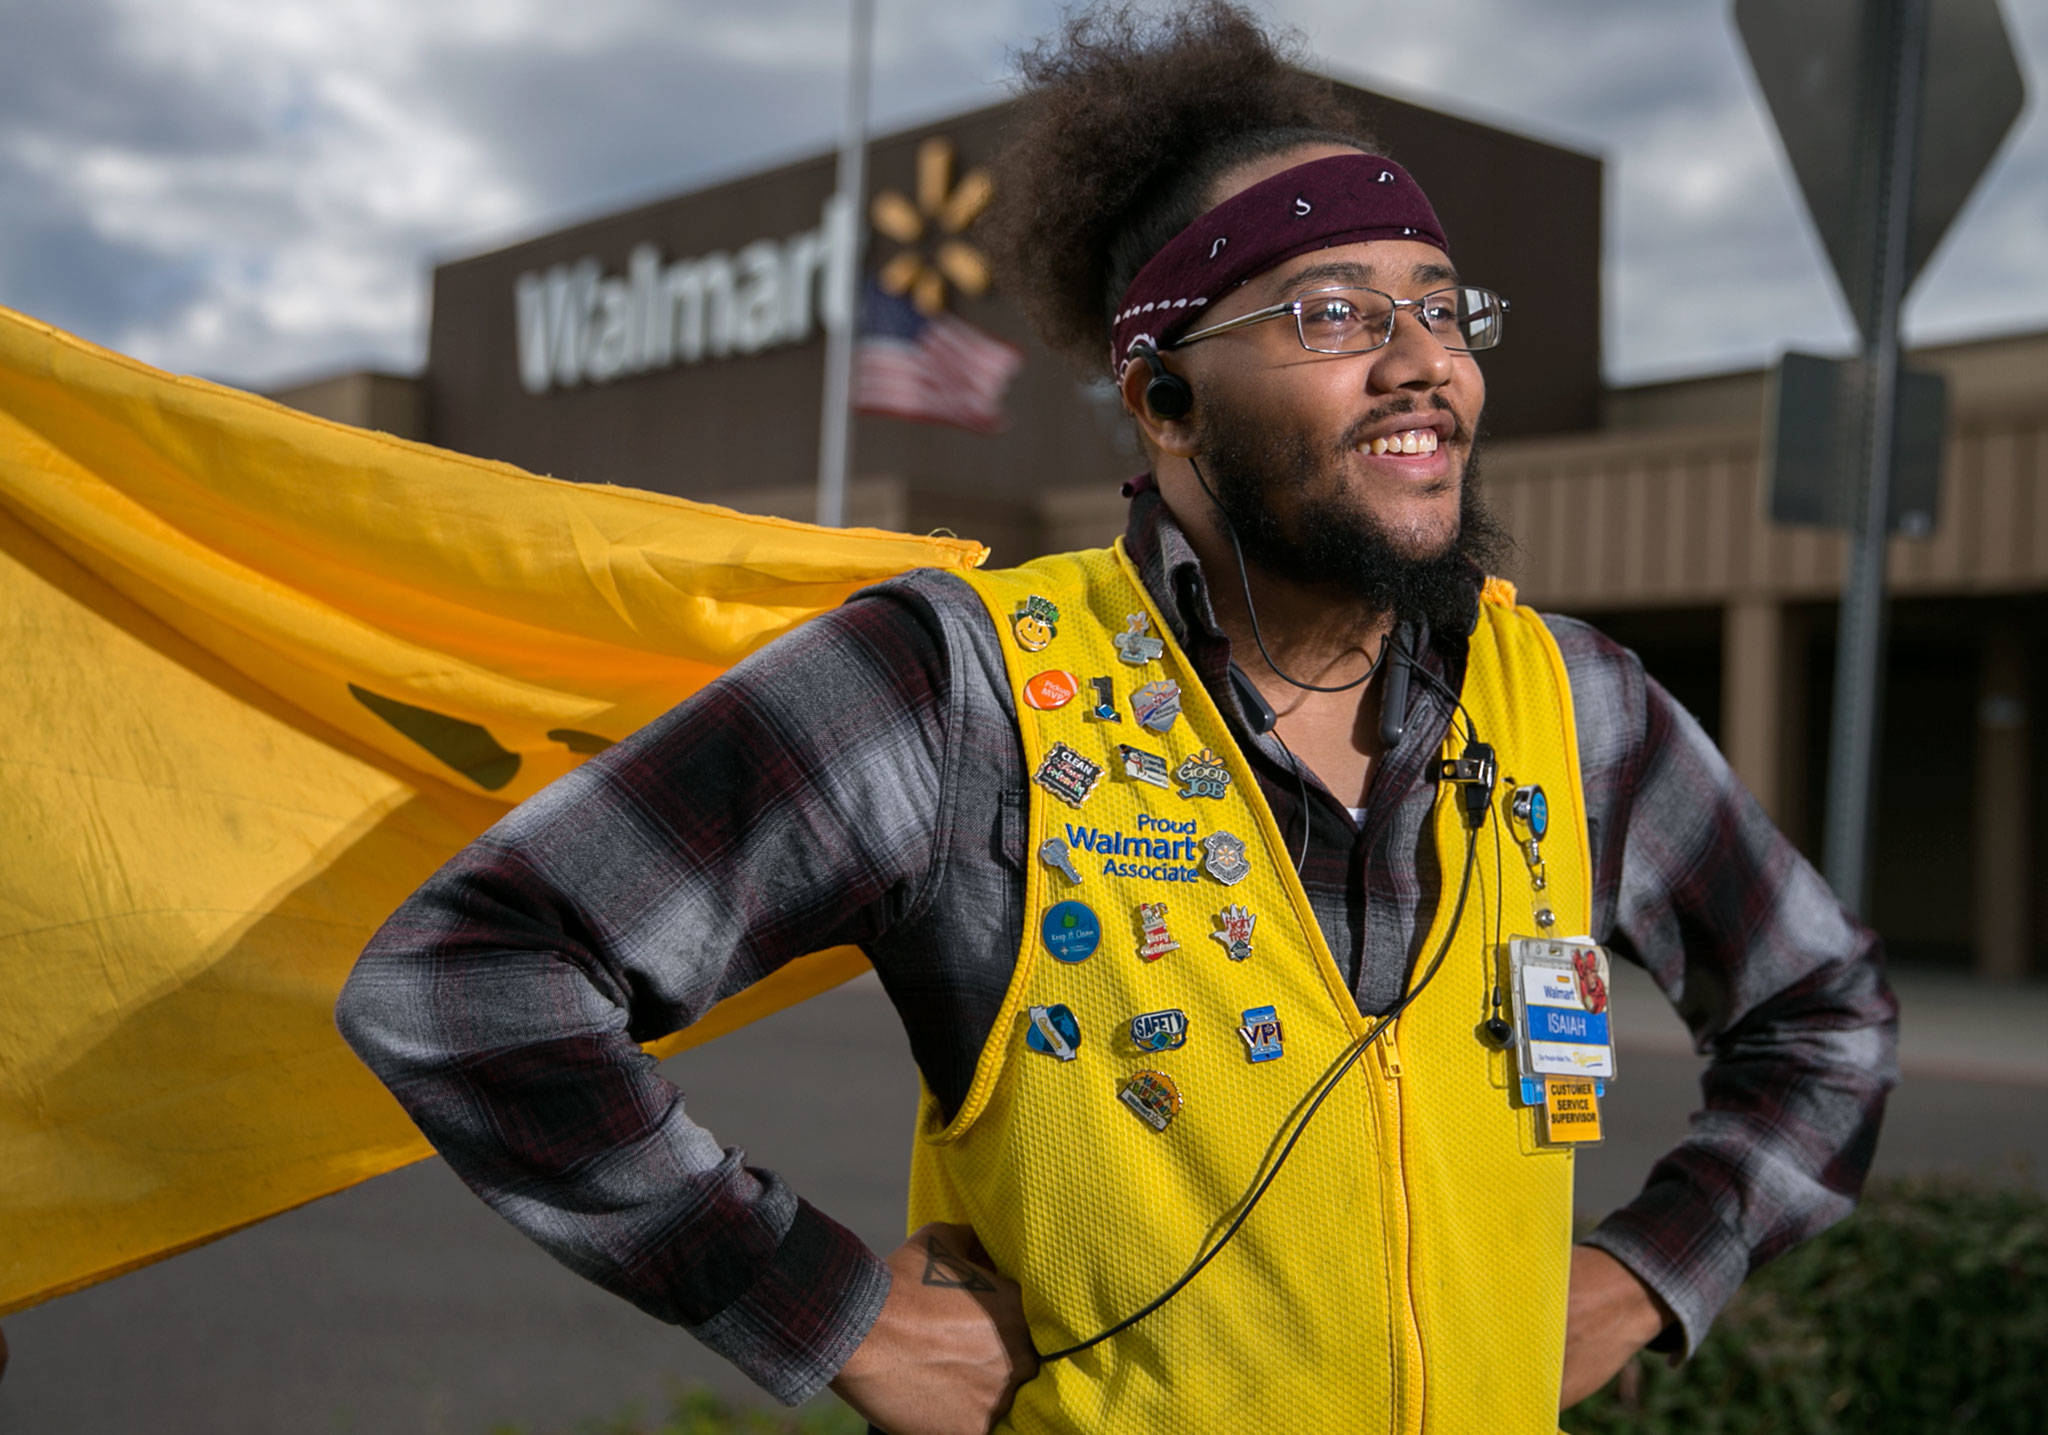 Isaiah Owens, a 4-year employee of Walmart, volunteered to wear a cape as part of the back-to-school season and continued the accessory after the promotion was over. (Kevin Clark / The Herald)